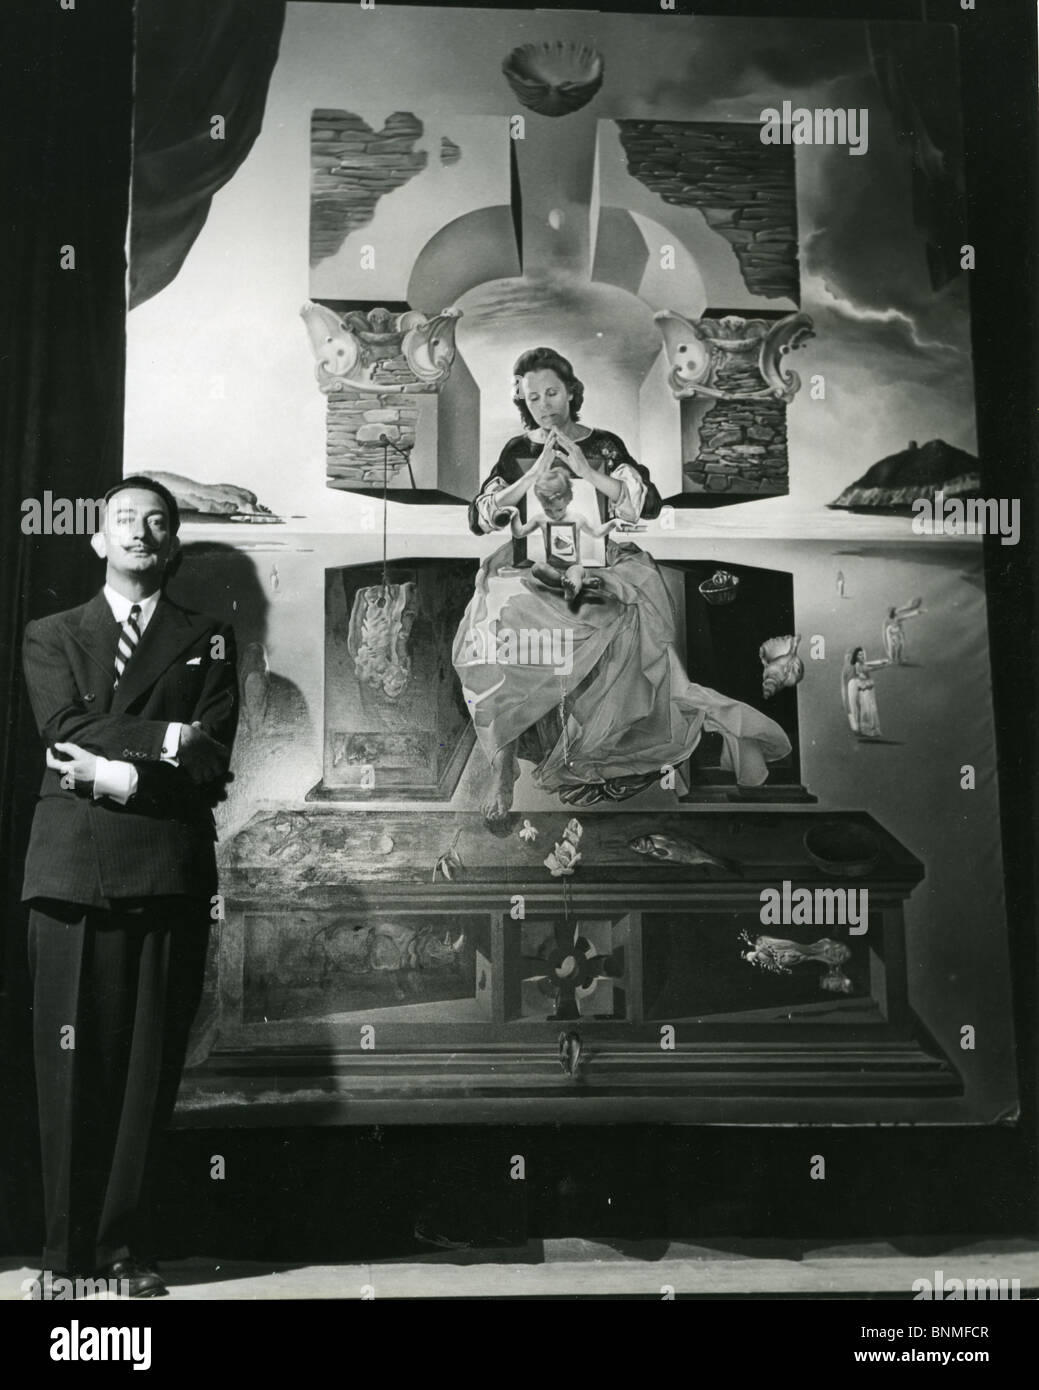 SALVADOR DALI  (1984-89) Spanish artist with his Madonna painting for which his wife Gala was he model Stock Photo